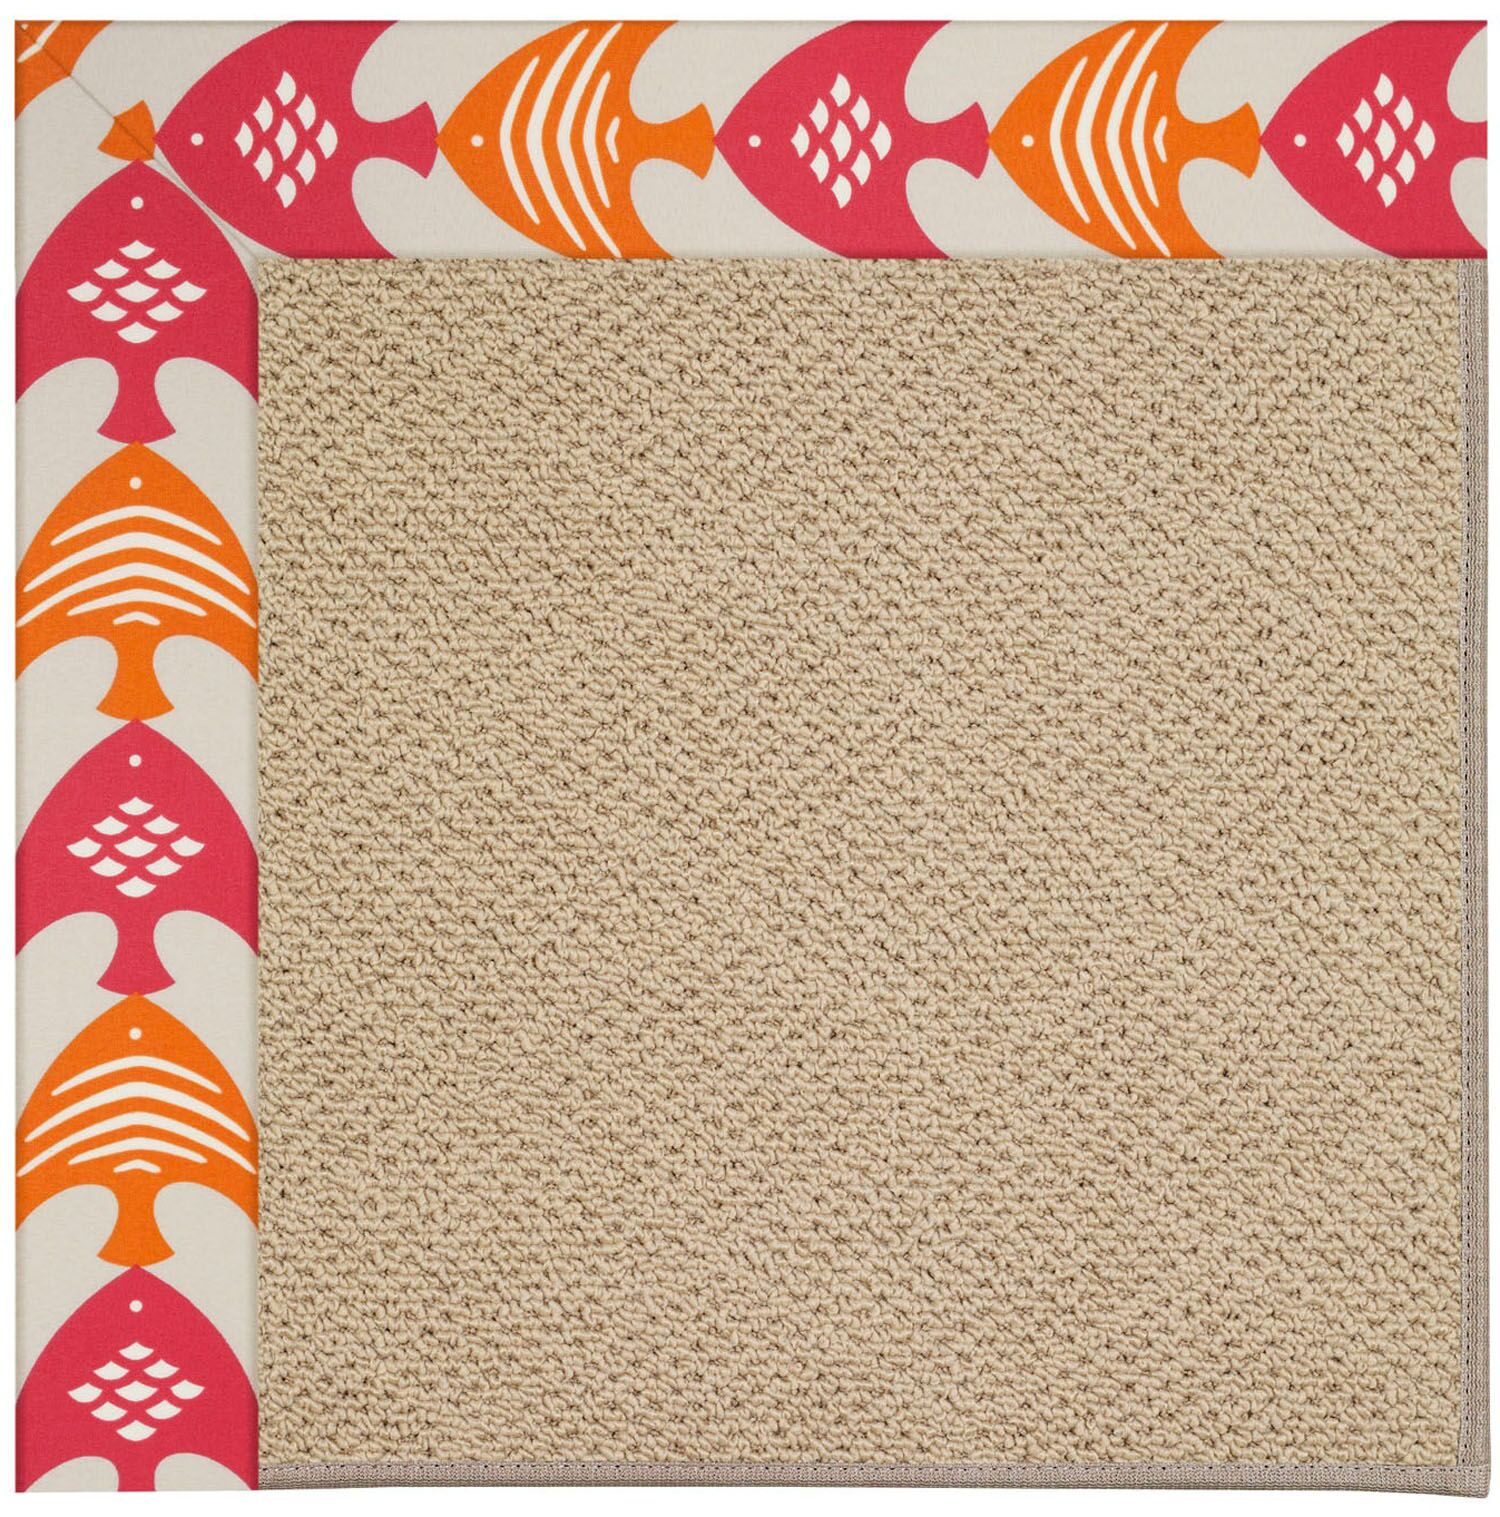 Lisle Machine Tufted Autumn Indoor/Outdoor Area Rug Rug Size: Rectangle 3' x 5'